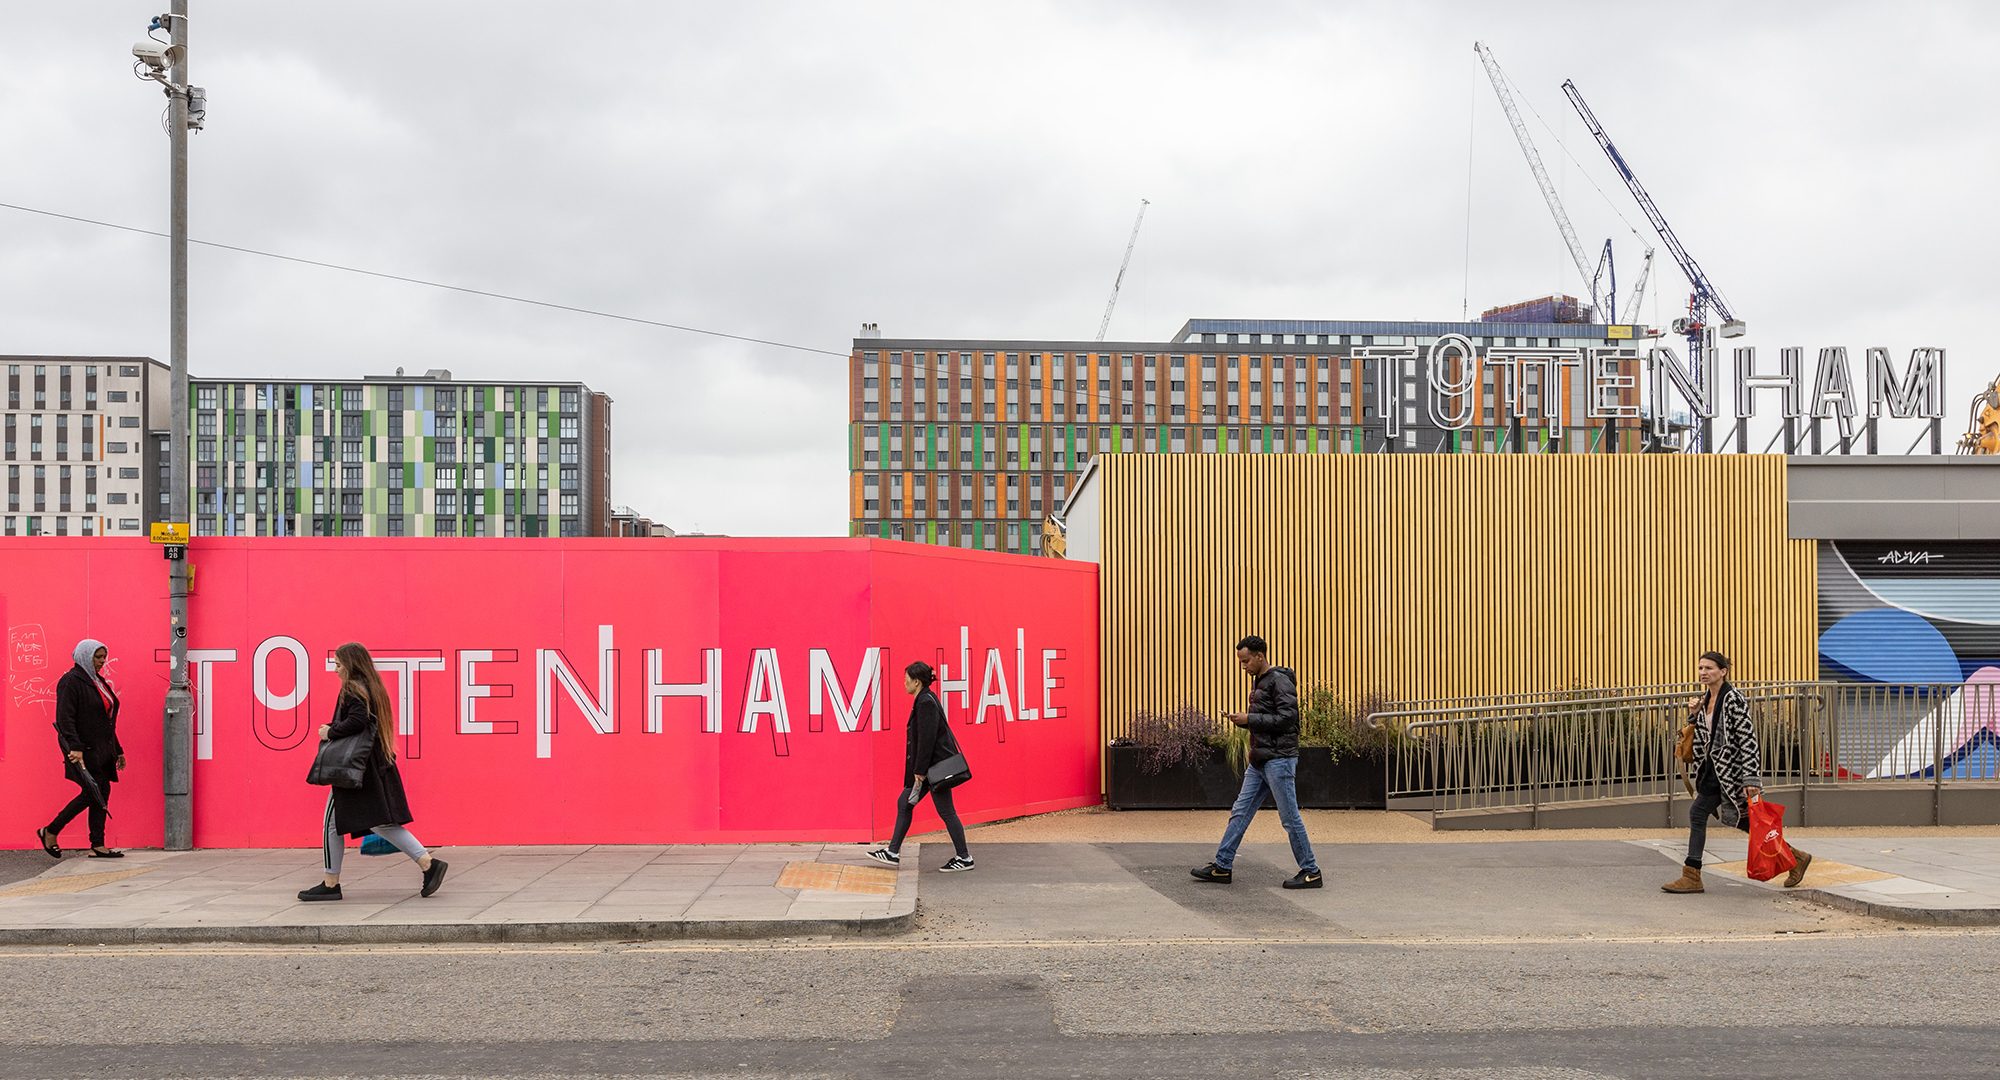 Argent Related is developing 1,030 new homes near Tottenham Hale Station